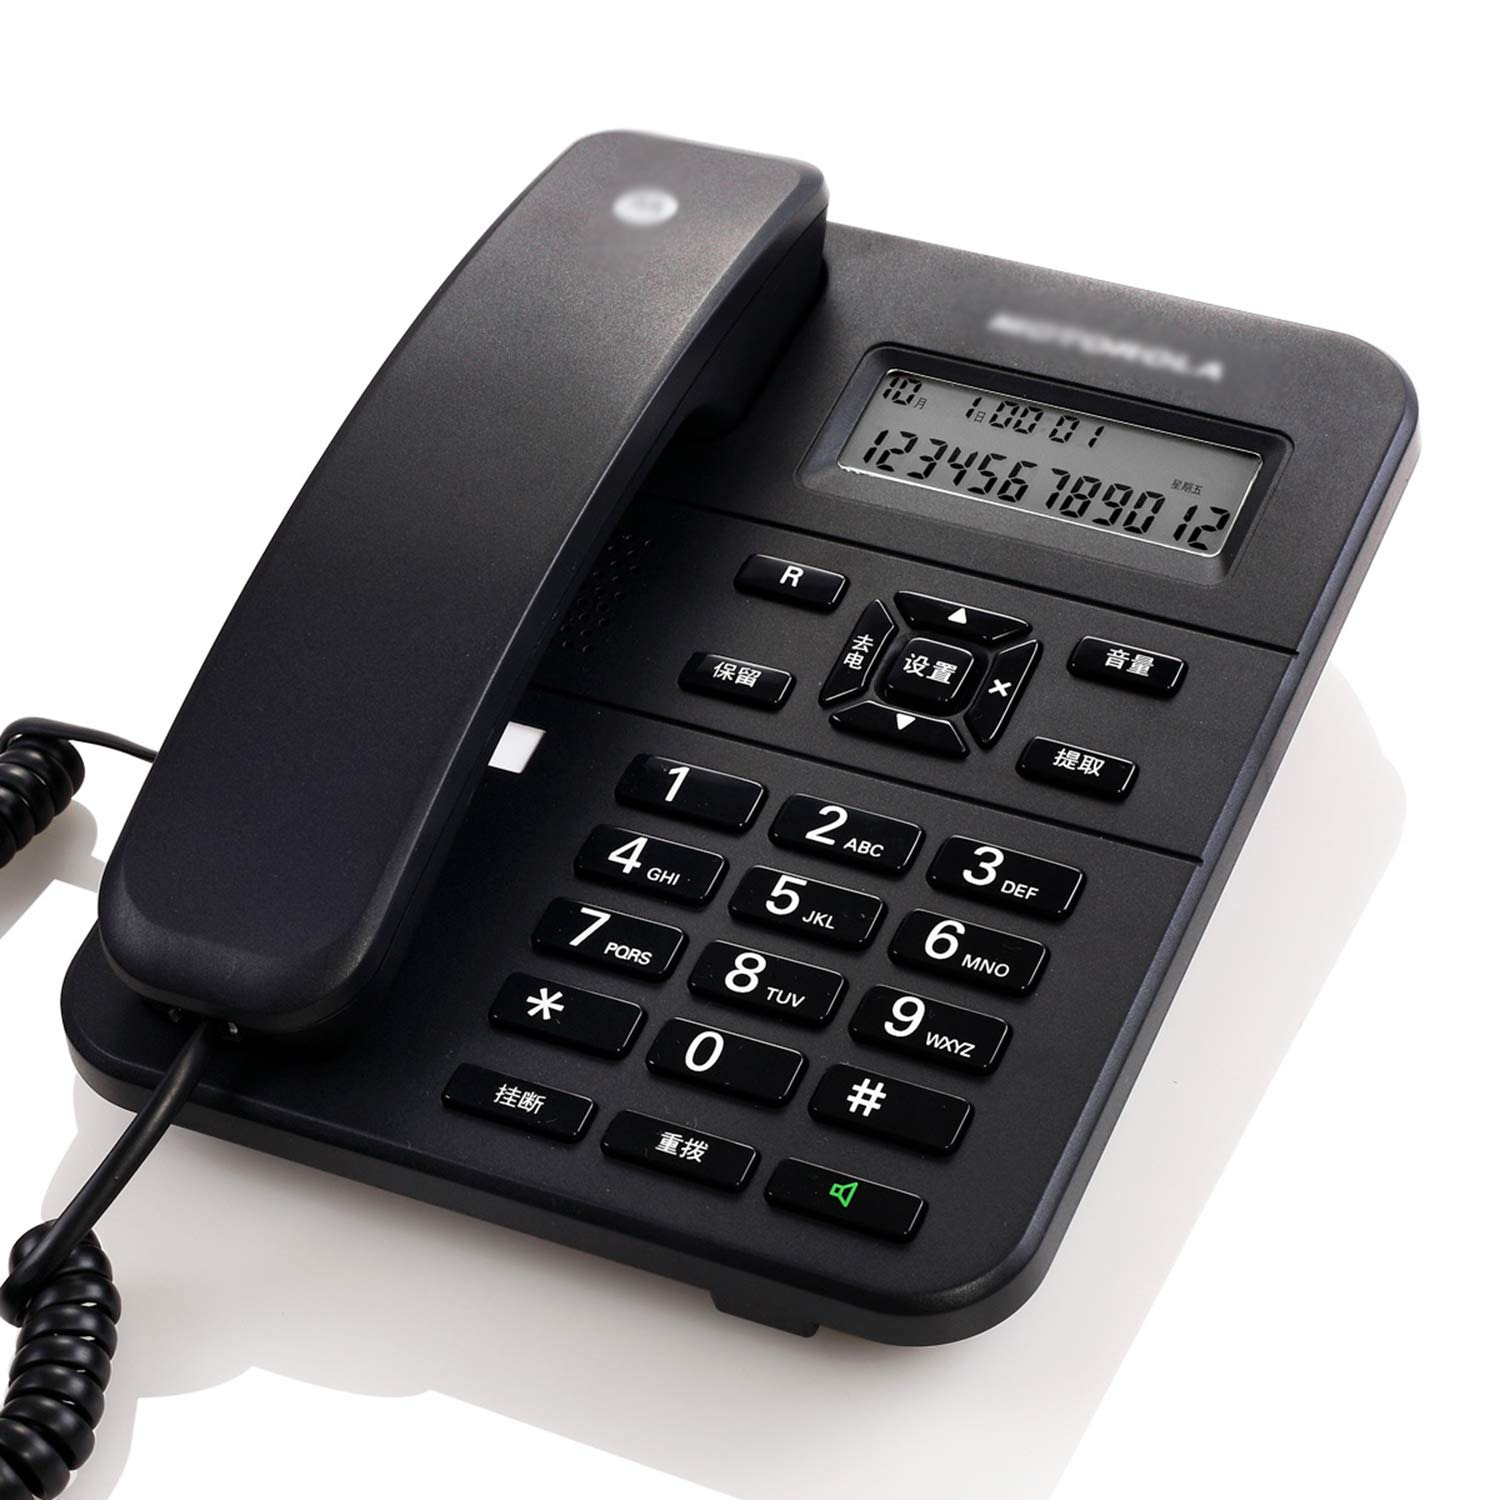 Battery Free Fixed Telephone Landline Corded Telephone Seat Home Office Backlit Fixed Line,Black by Telephones